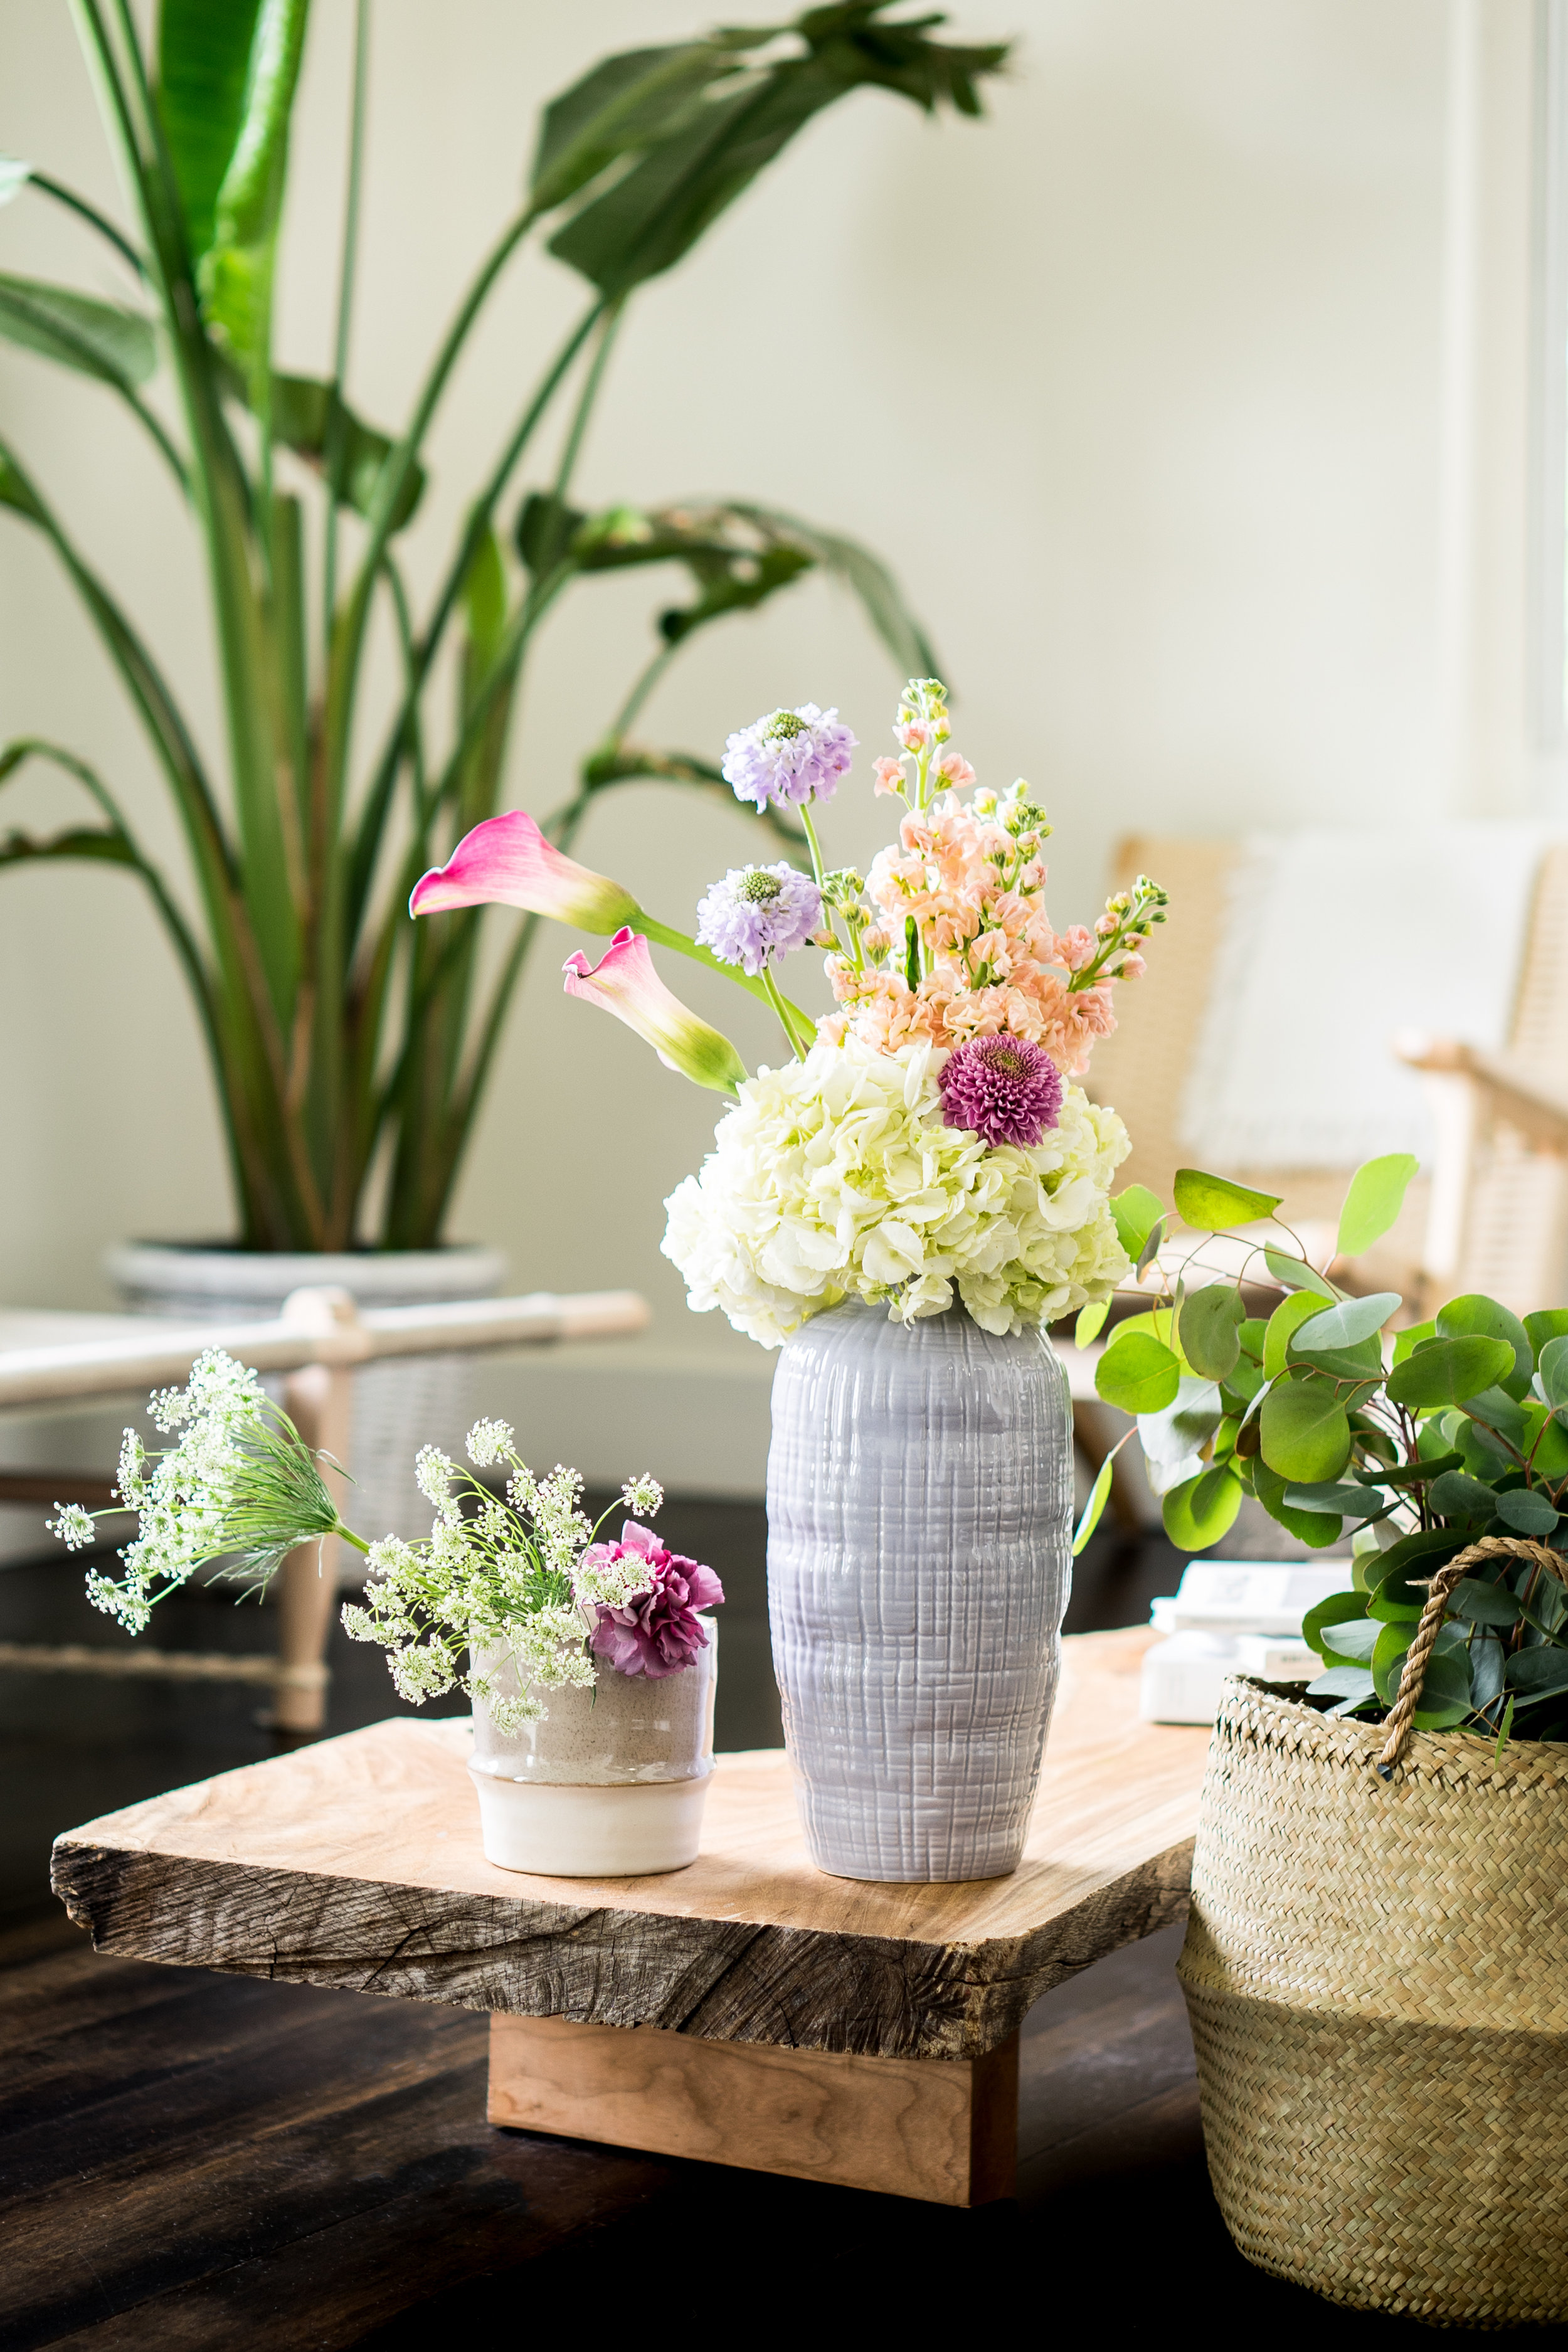 Hydrangea and Calla Lilly Arrangement in Nature Inspired Decor